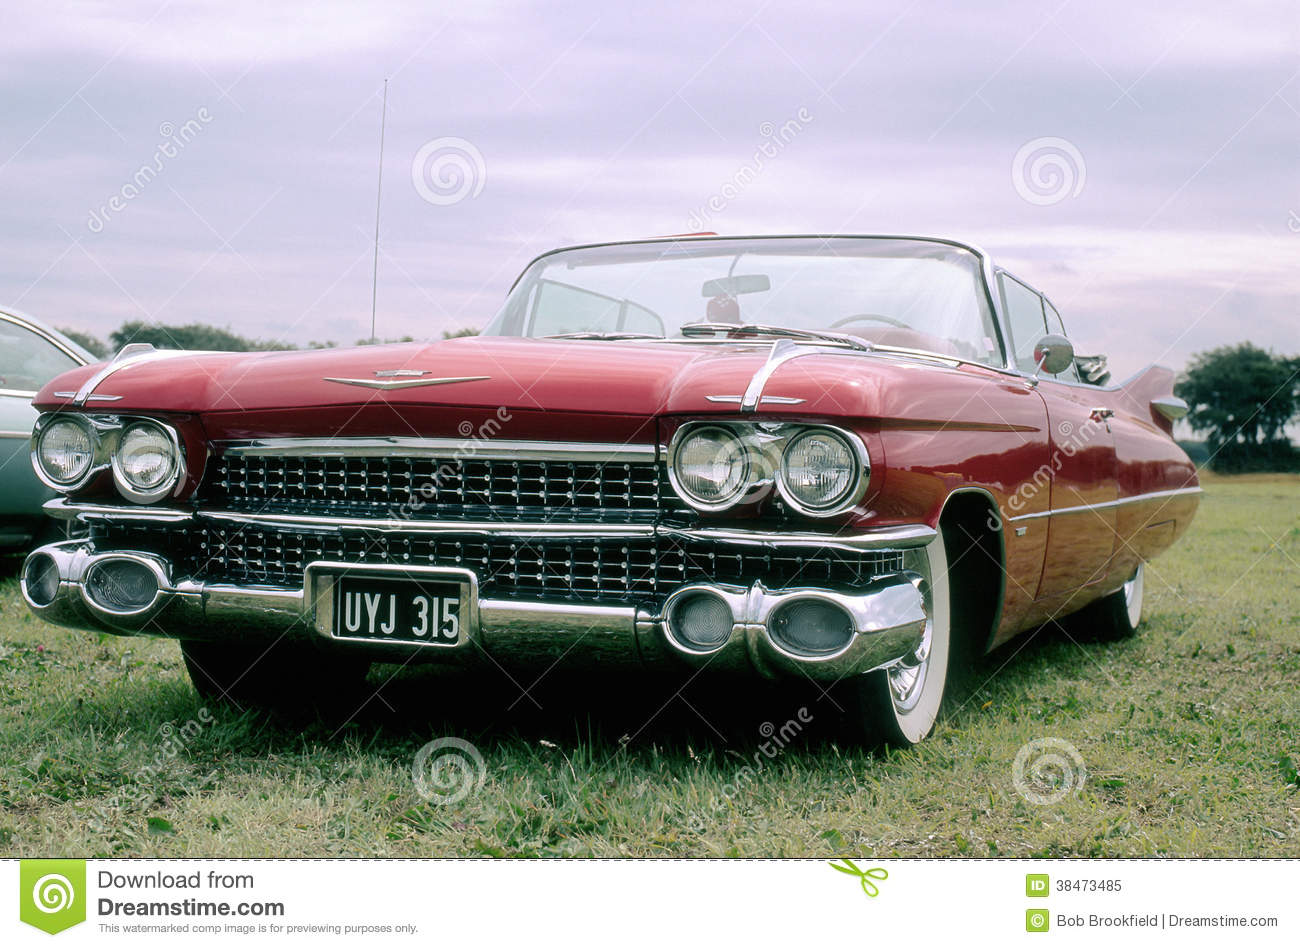 Vintage car (red Cadillac convertible)